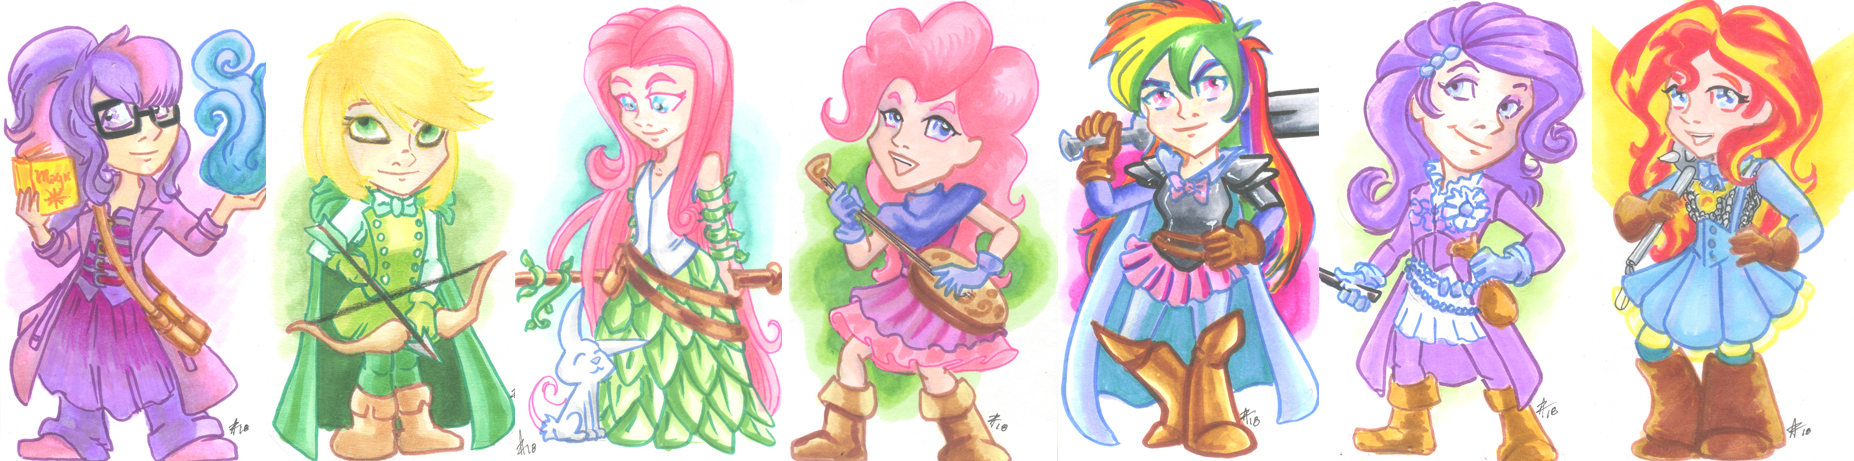 Equestria Girls role play by luxshine